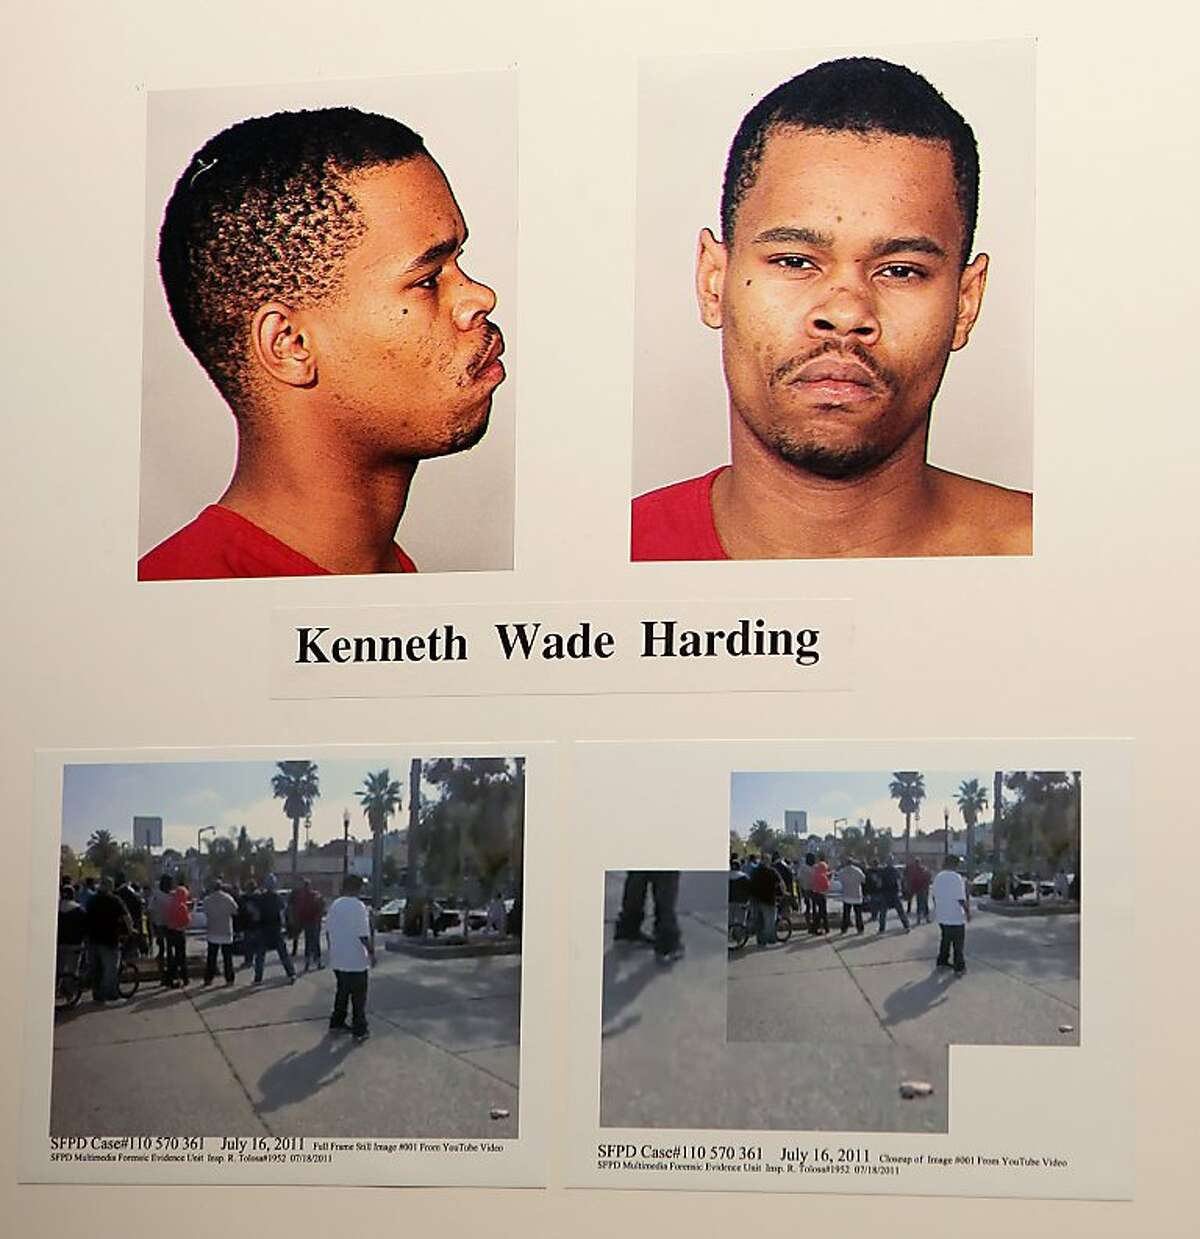 Mug of suspect Kenneth Wade Harding on Monday, July 18, 2011 at the Hall of Justice in San Francisco, Calif., shown in the press conference about the recent officer involved in shooting him on 3rd and Palou Ave.